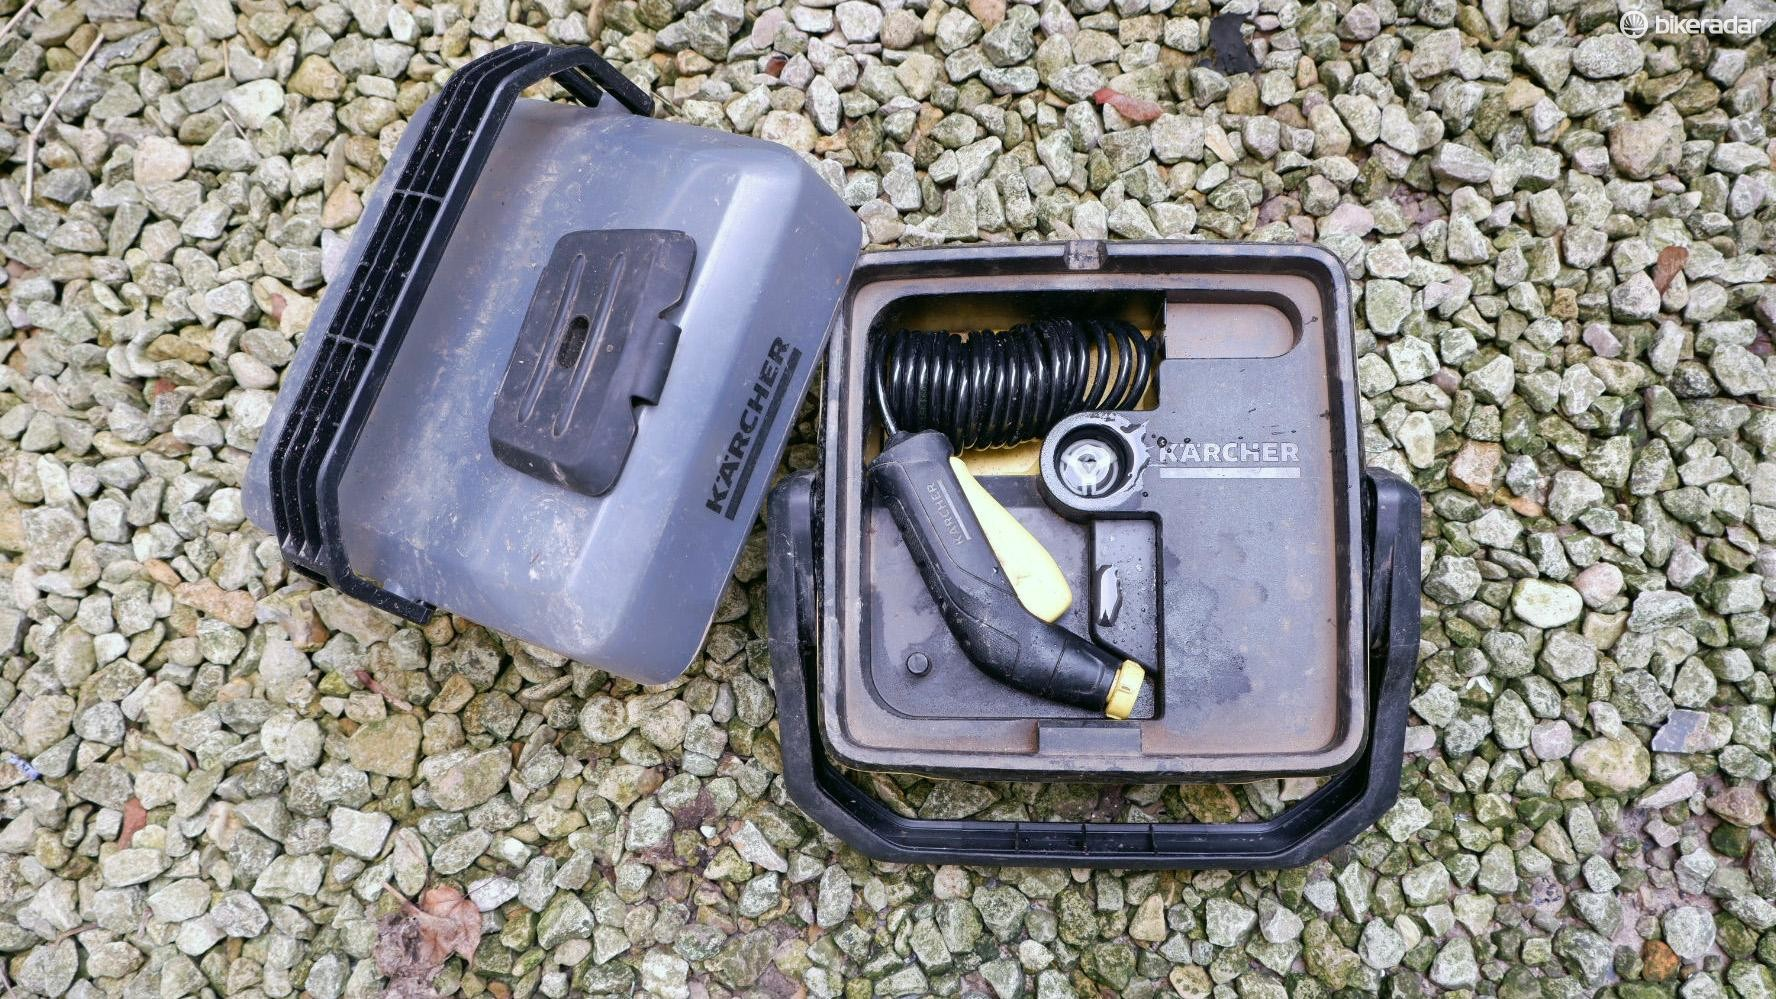 When not in use, the hose coils up neatly inside the box